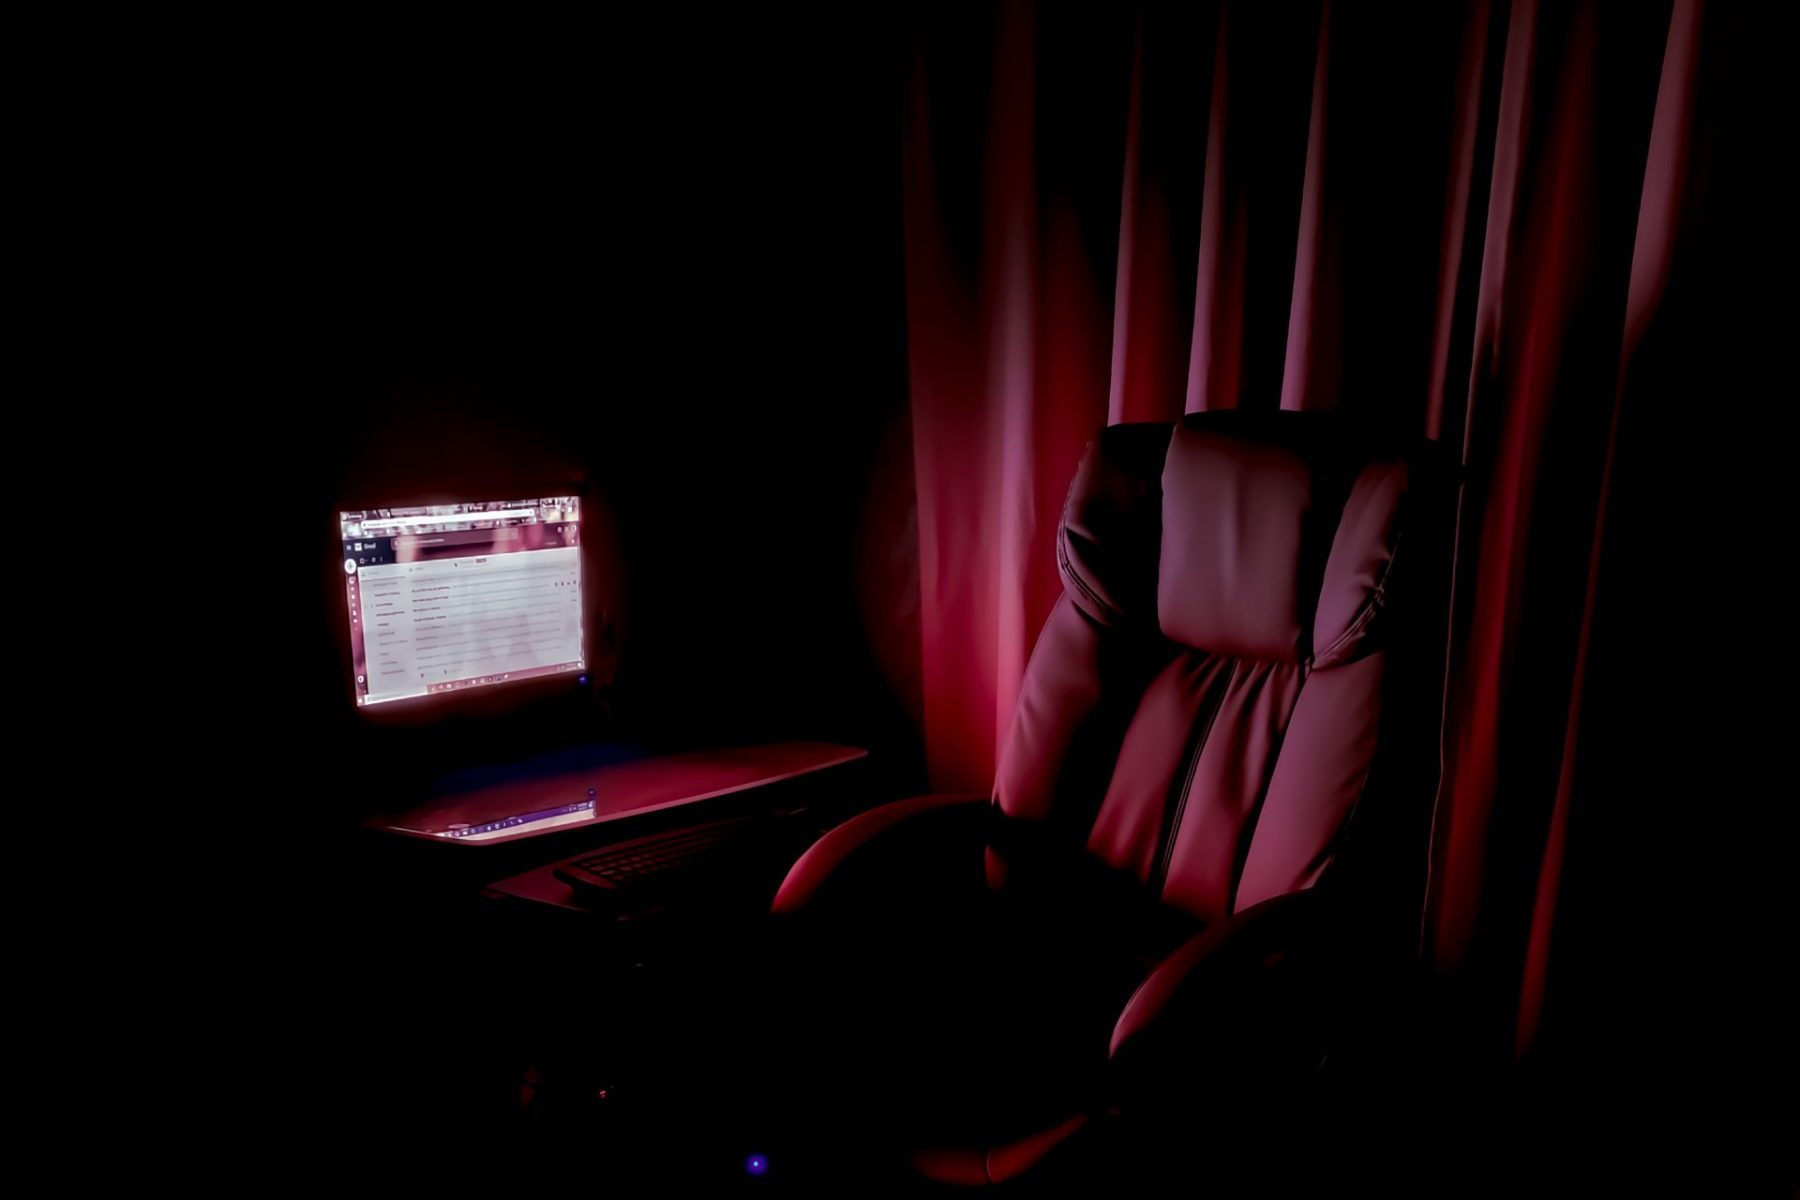 In article about text-based role-playing, a chair and a lit computer screen in a dark room